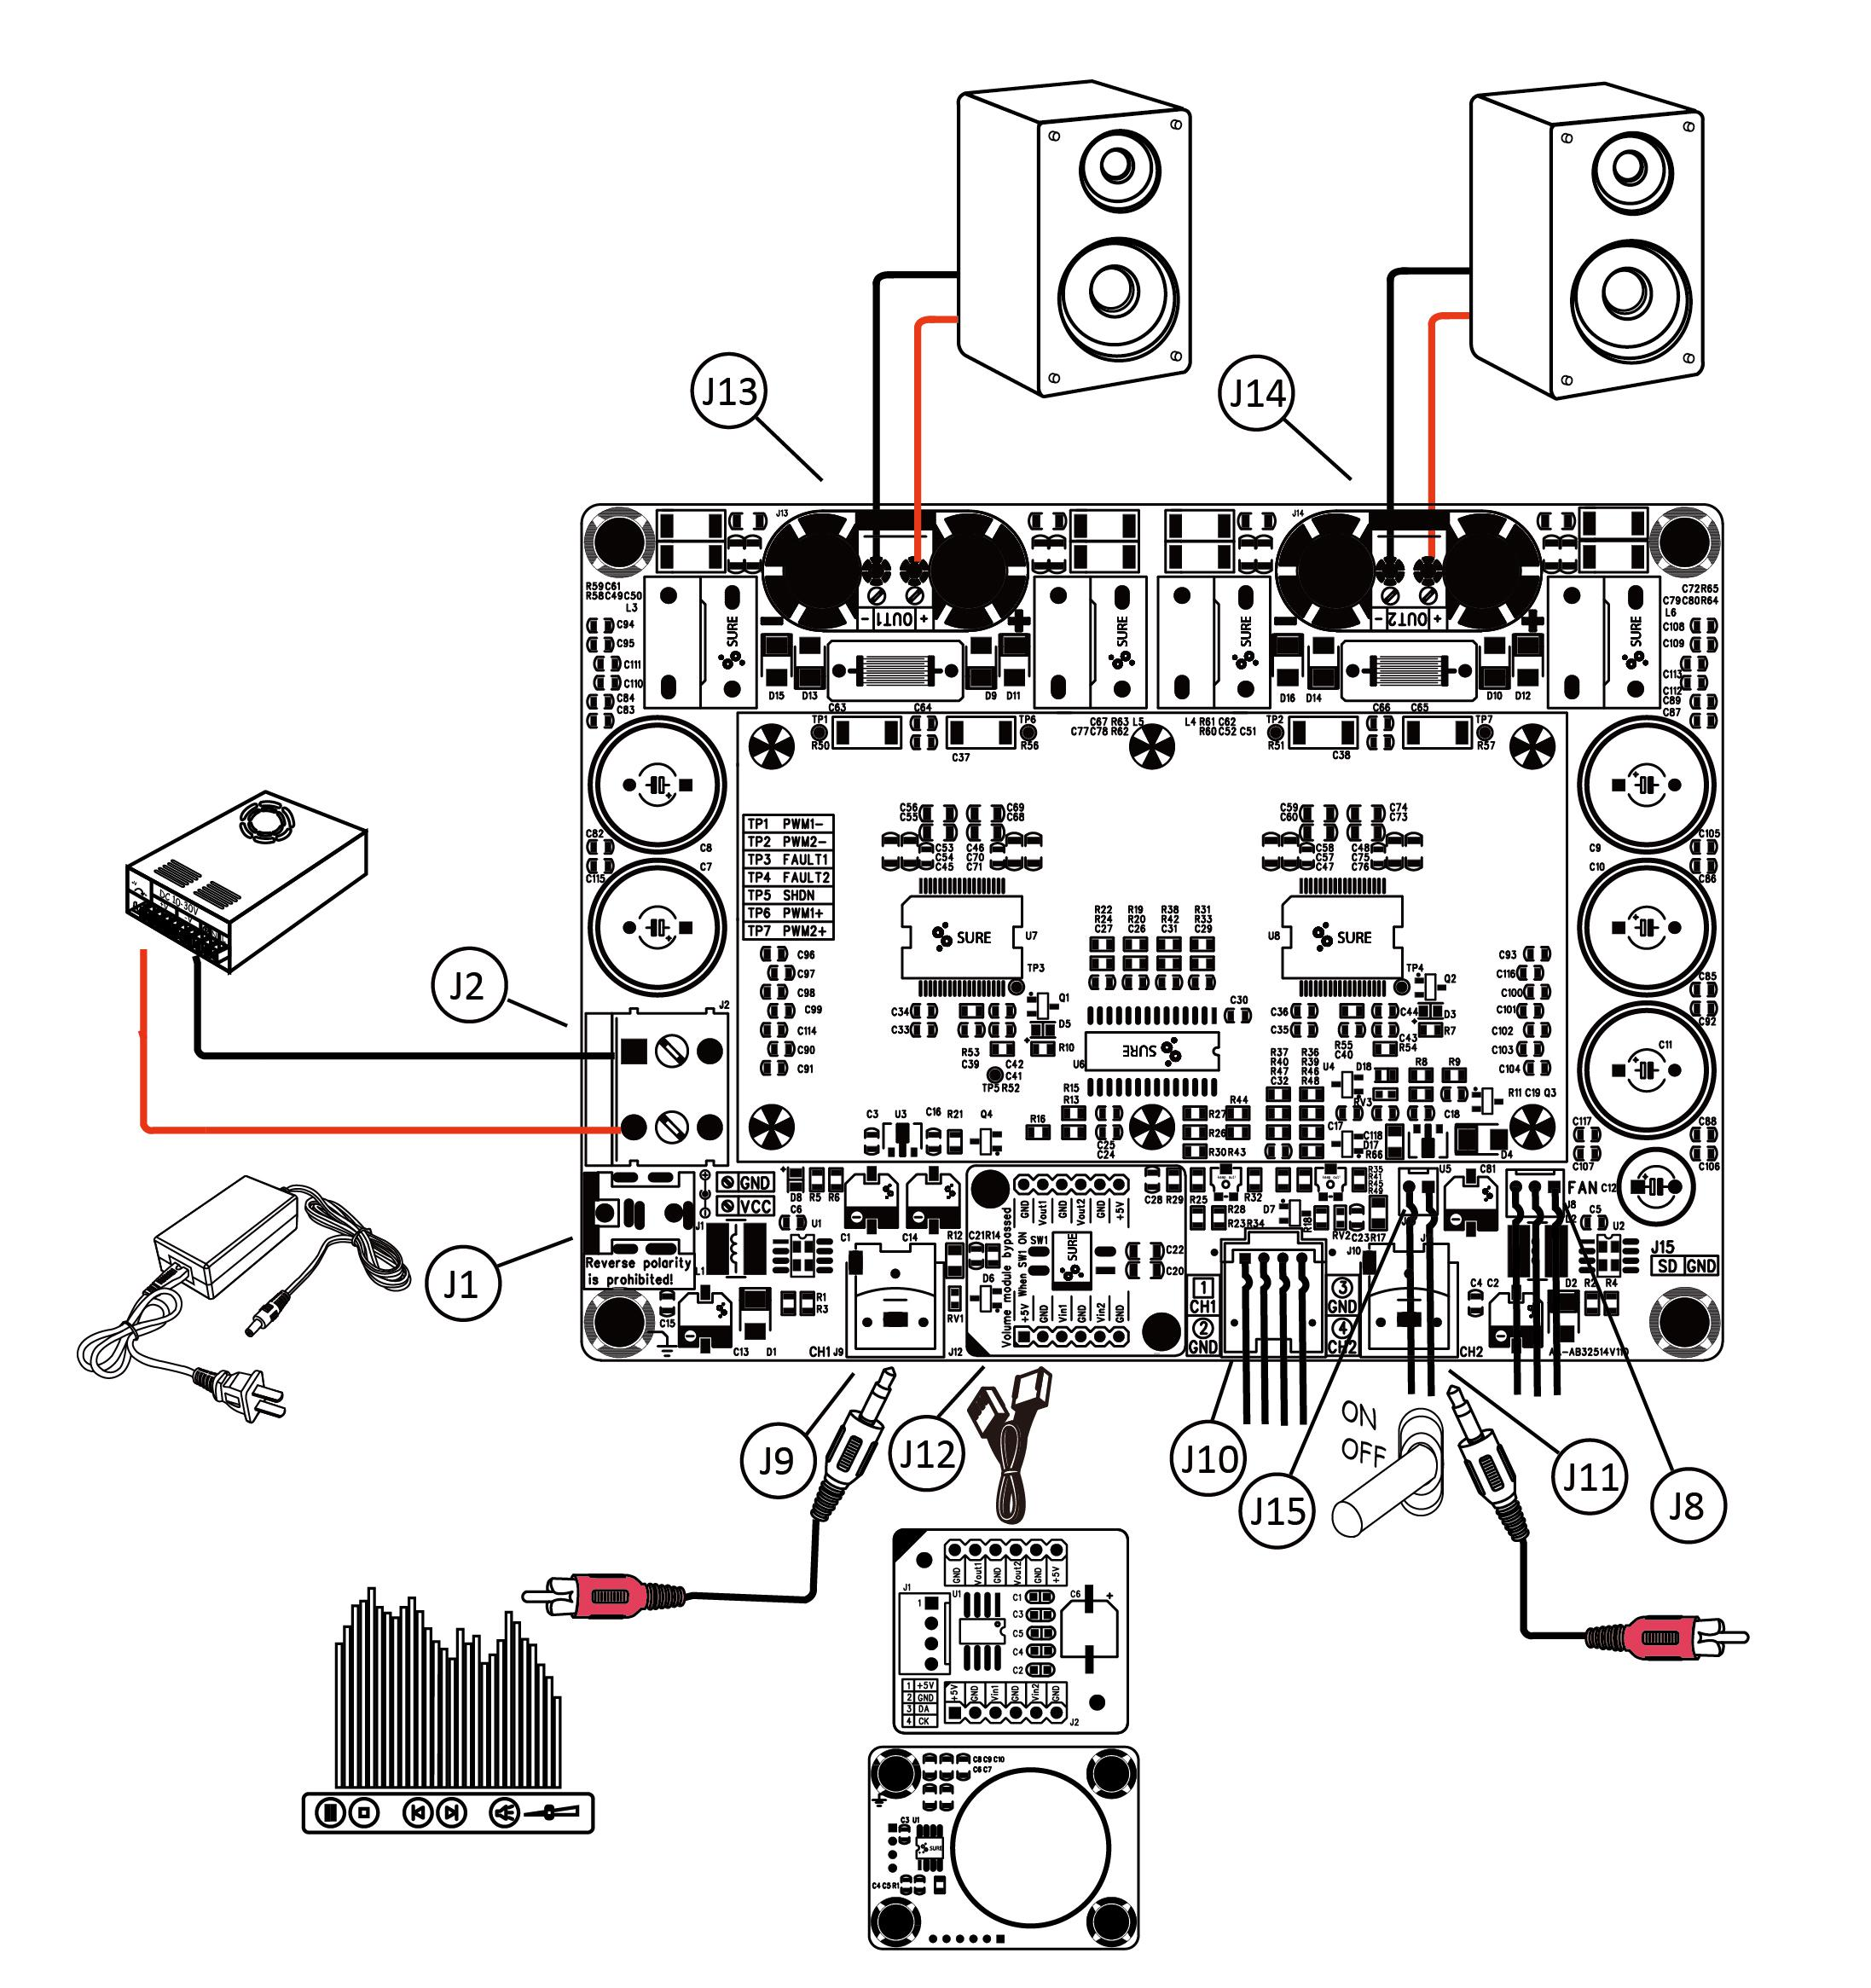 Sure Electronics Webstore 2 X 500 Watt Class D Audio Amplifier 300 Board Tas5613 300w Mono Power Amp Model Selection Guide